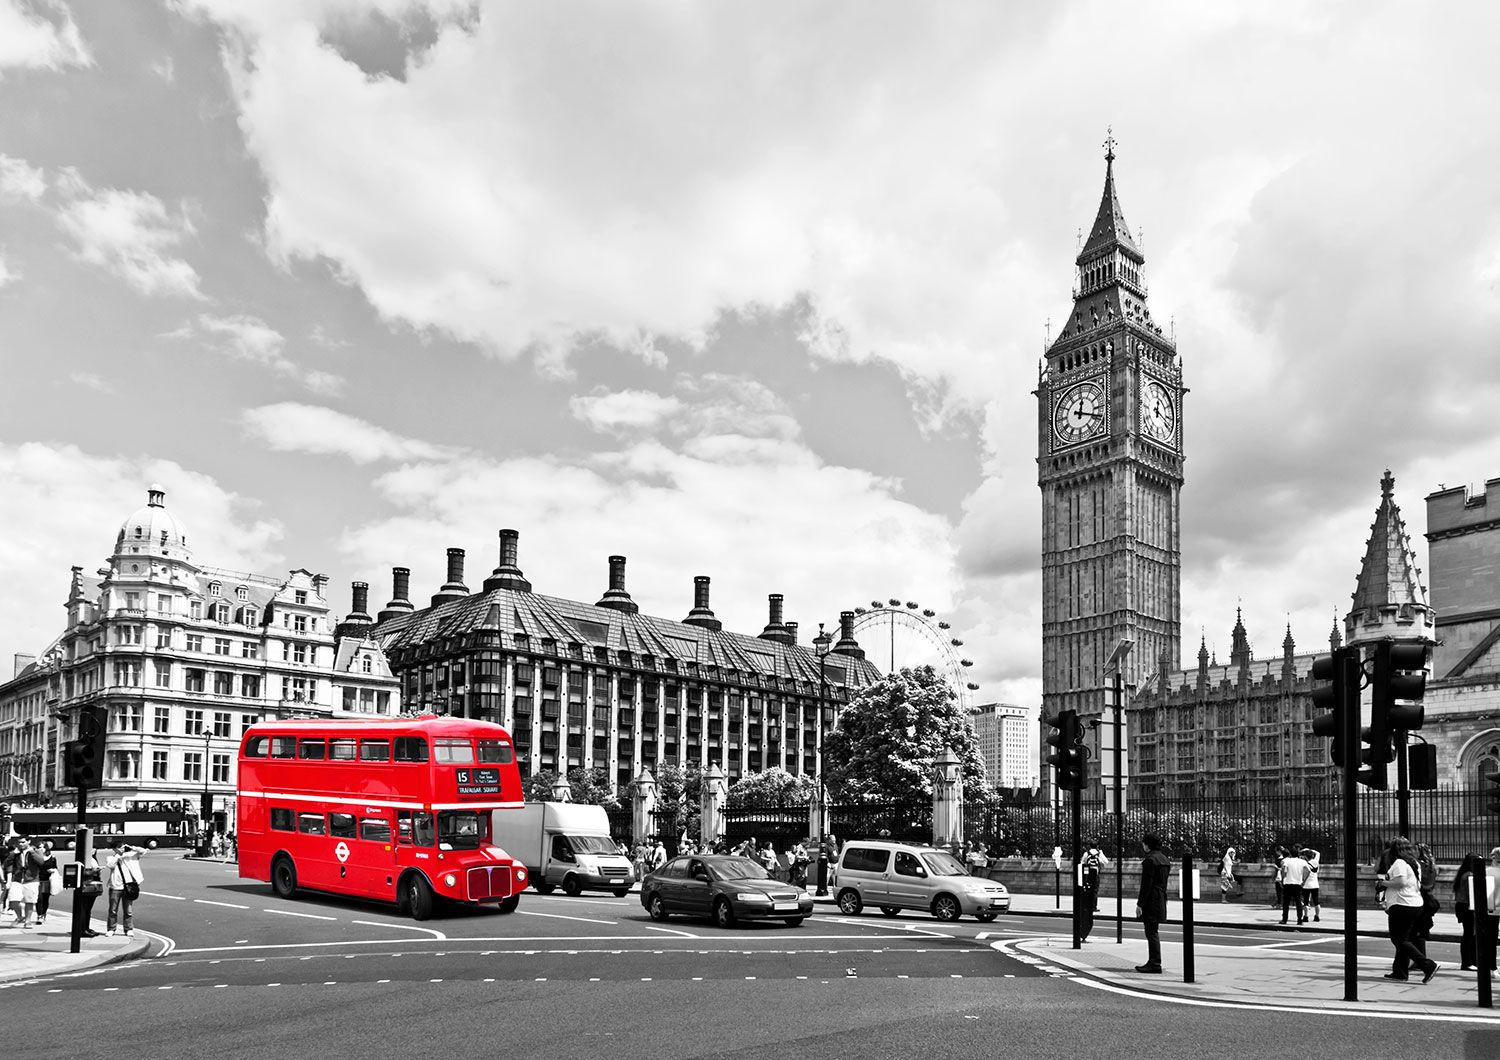 Fototapeten: Bus in Westminster